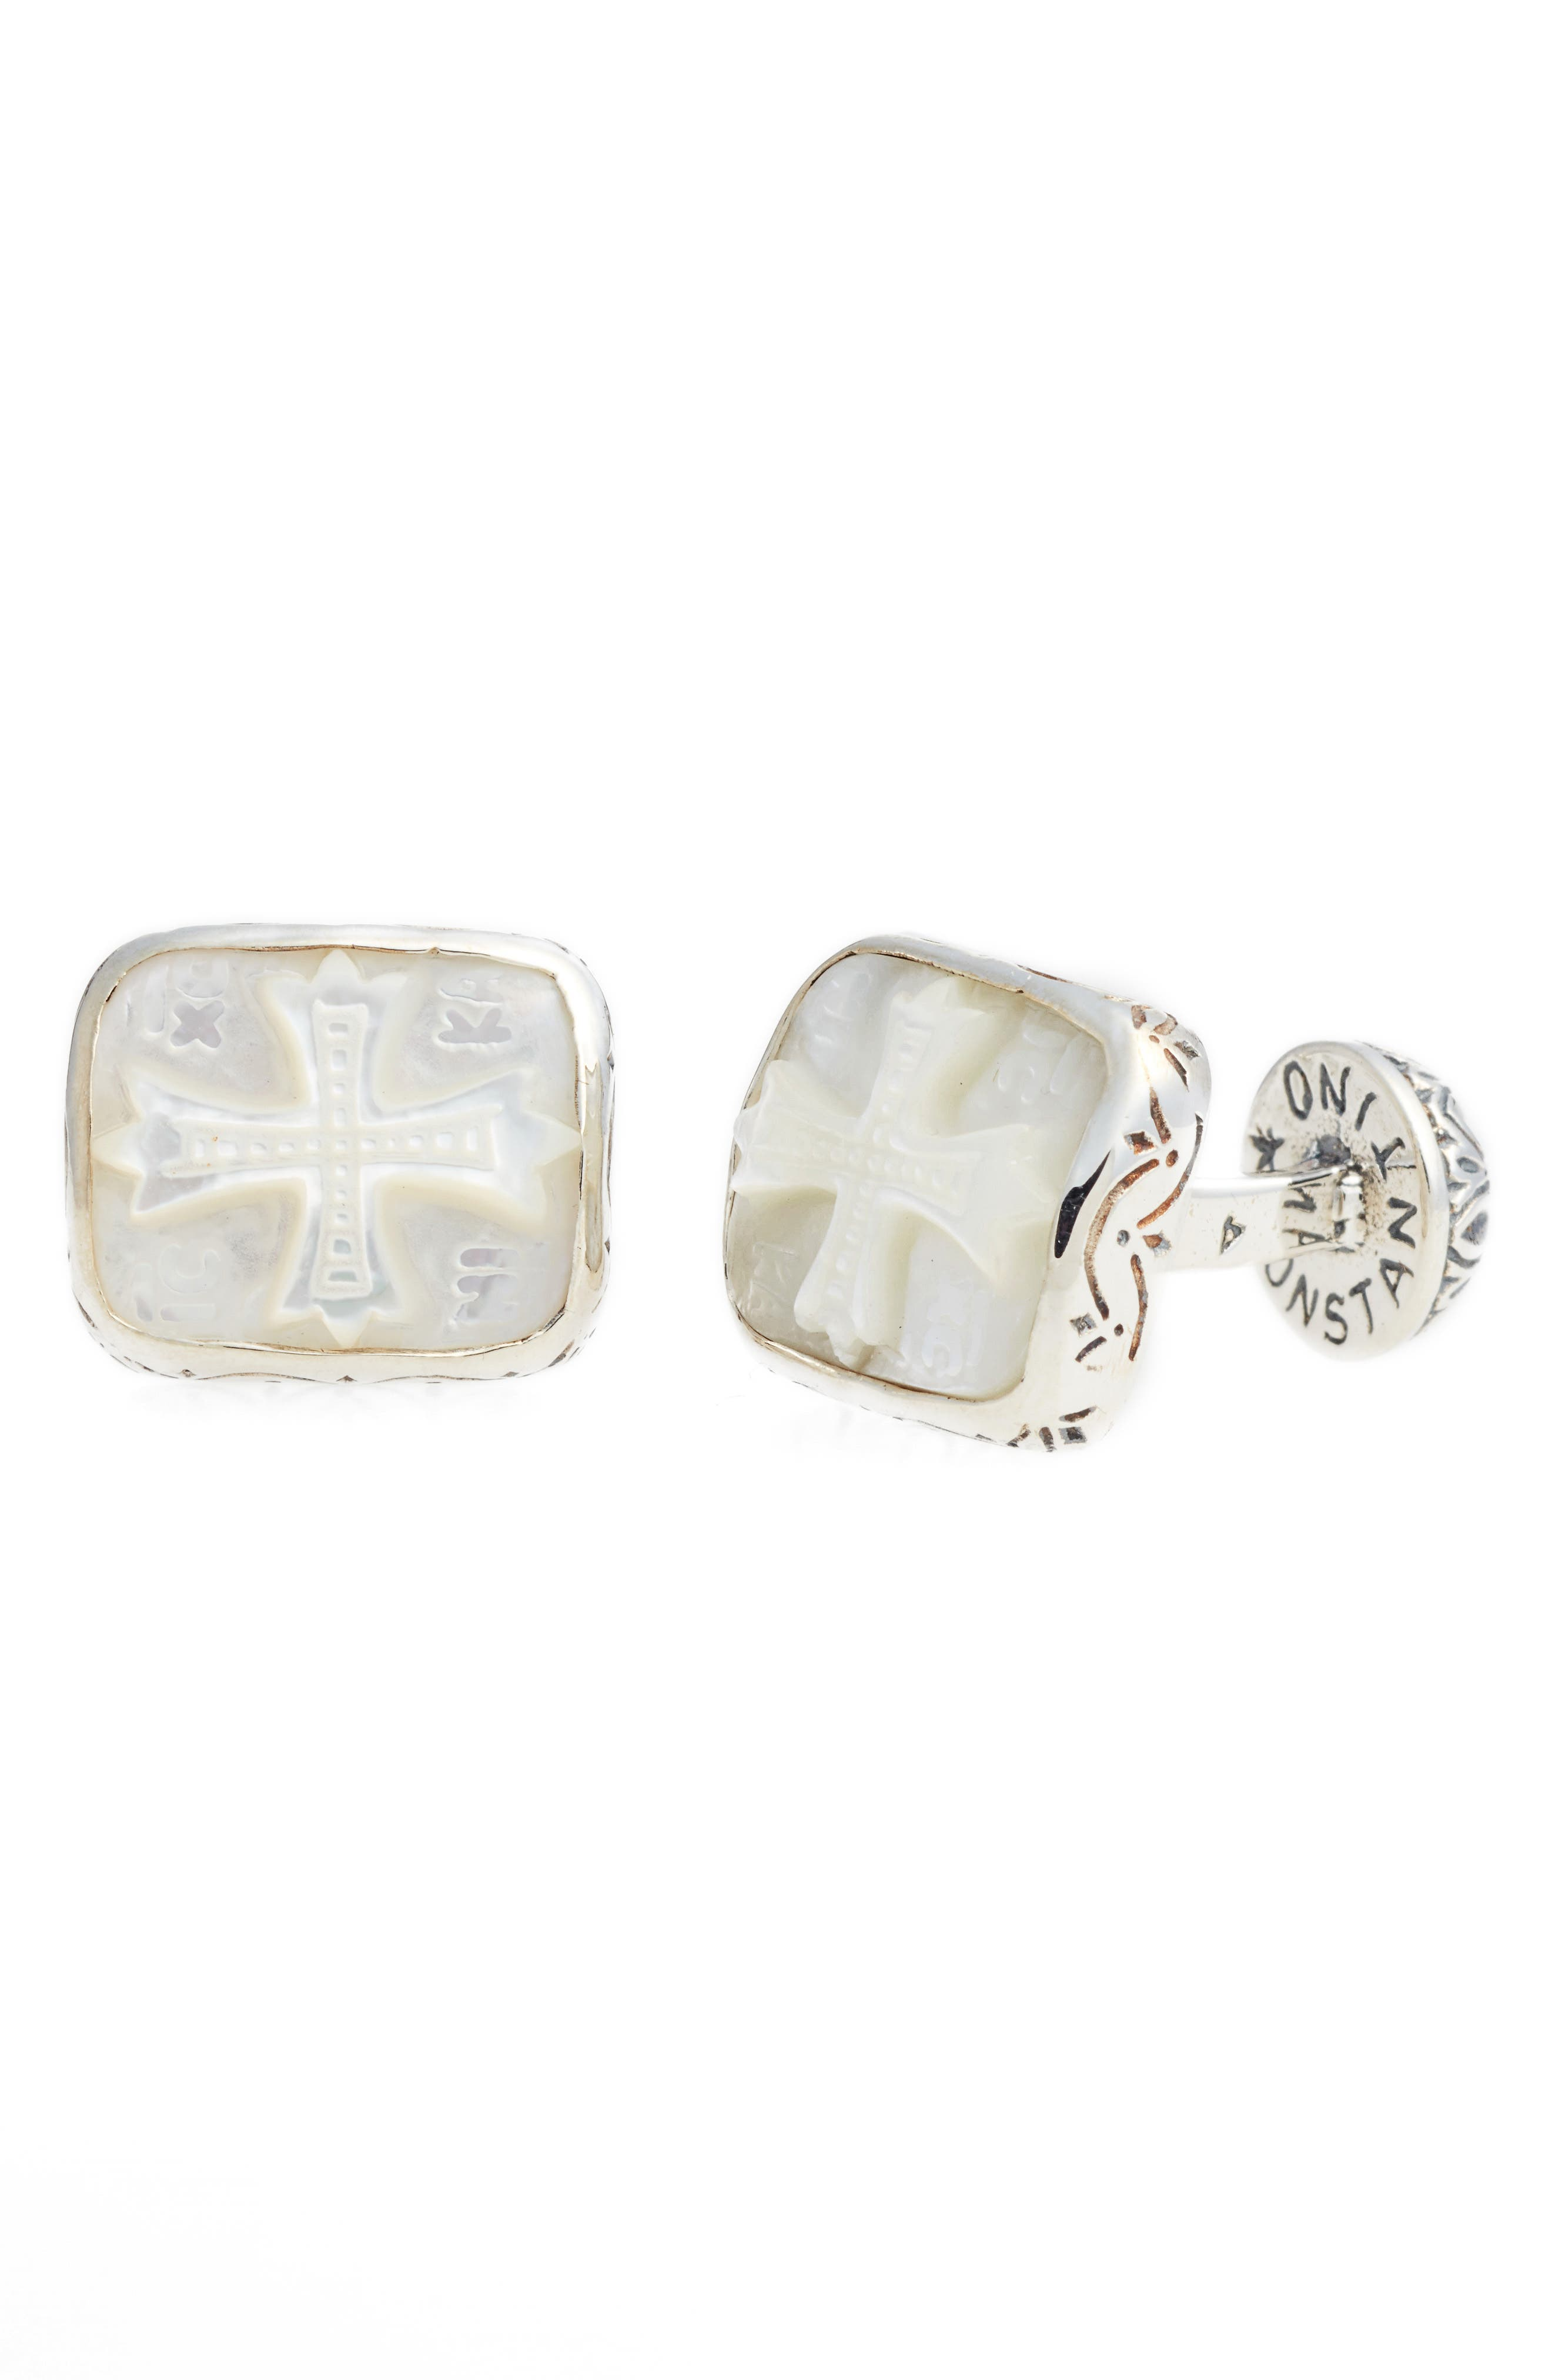 KONSTANTINO, Color Classics Cuff Links, Main thumbnail 1, color, SILVER/ MOTHER OF PEARL